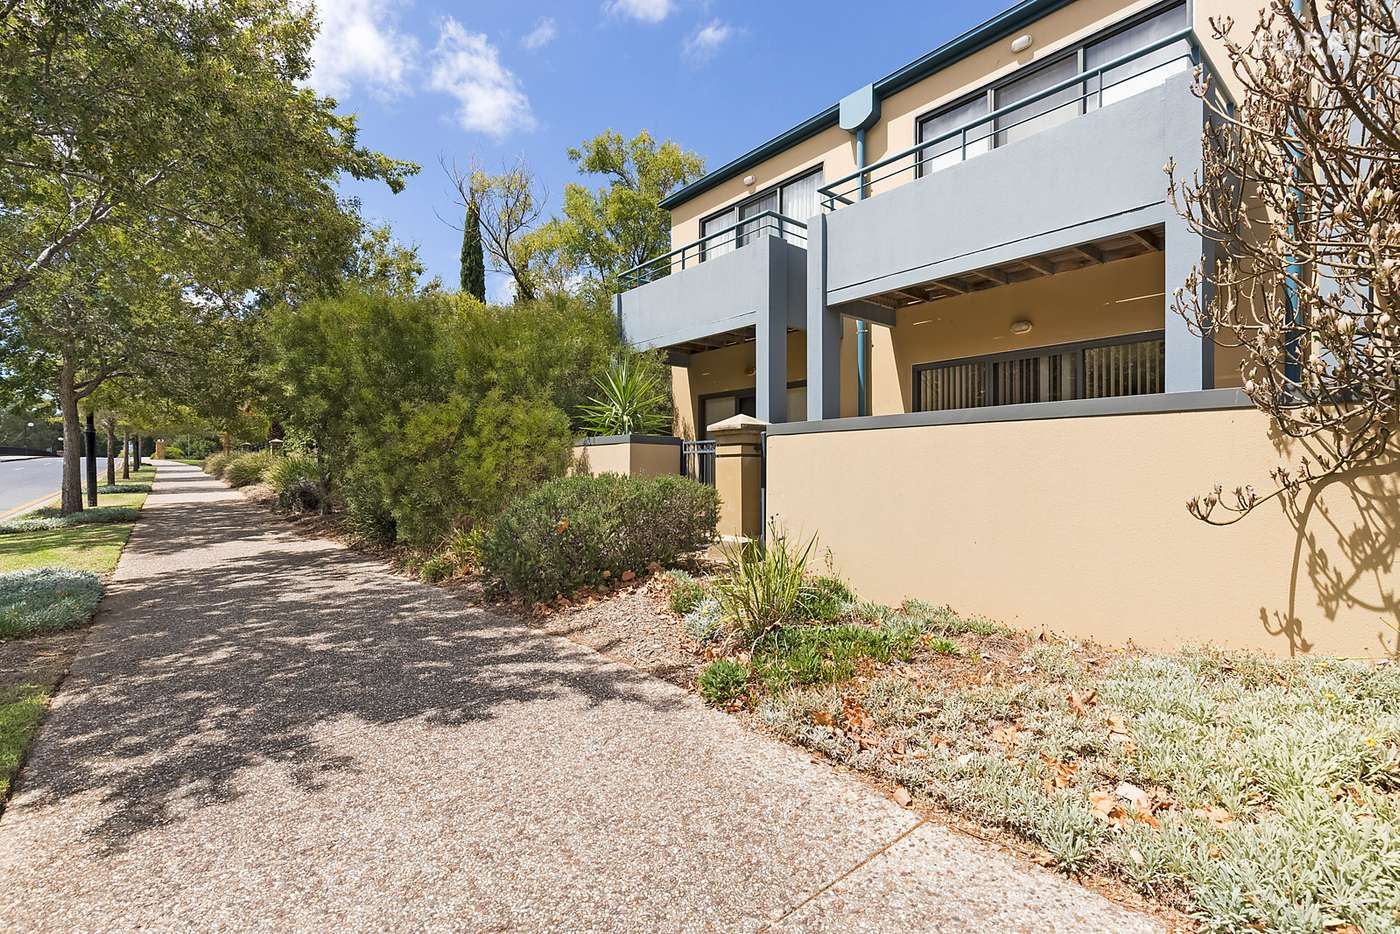 Main view of Homely townhouse listing, 7/2 Greentree Place, Mawson Lakes SA 5095